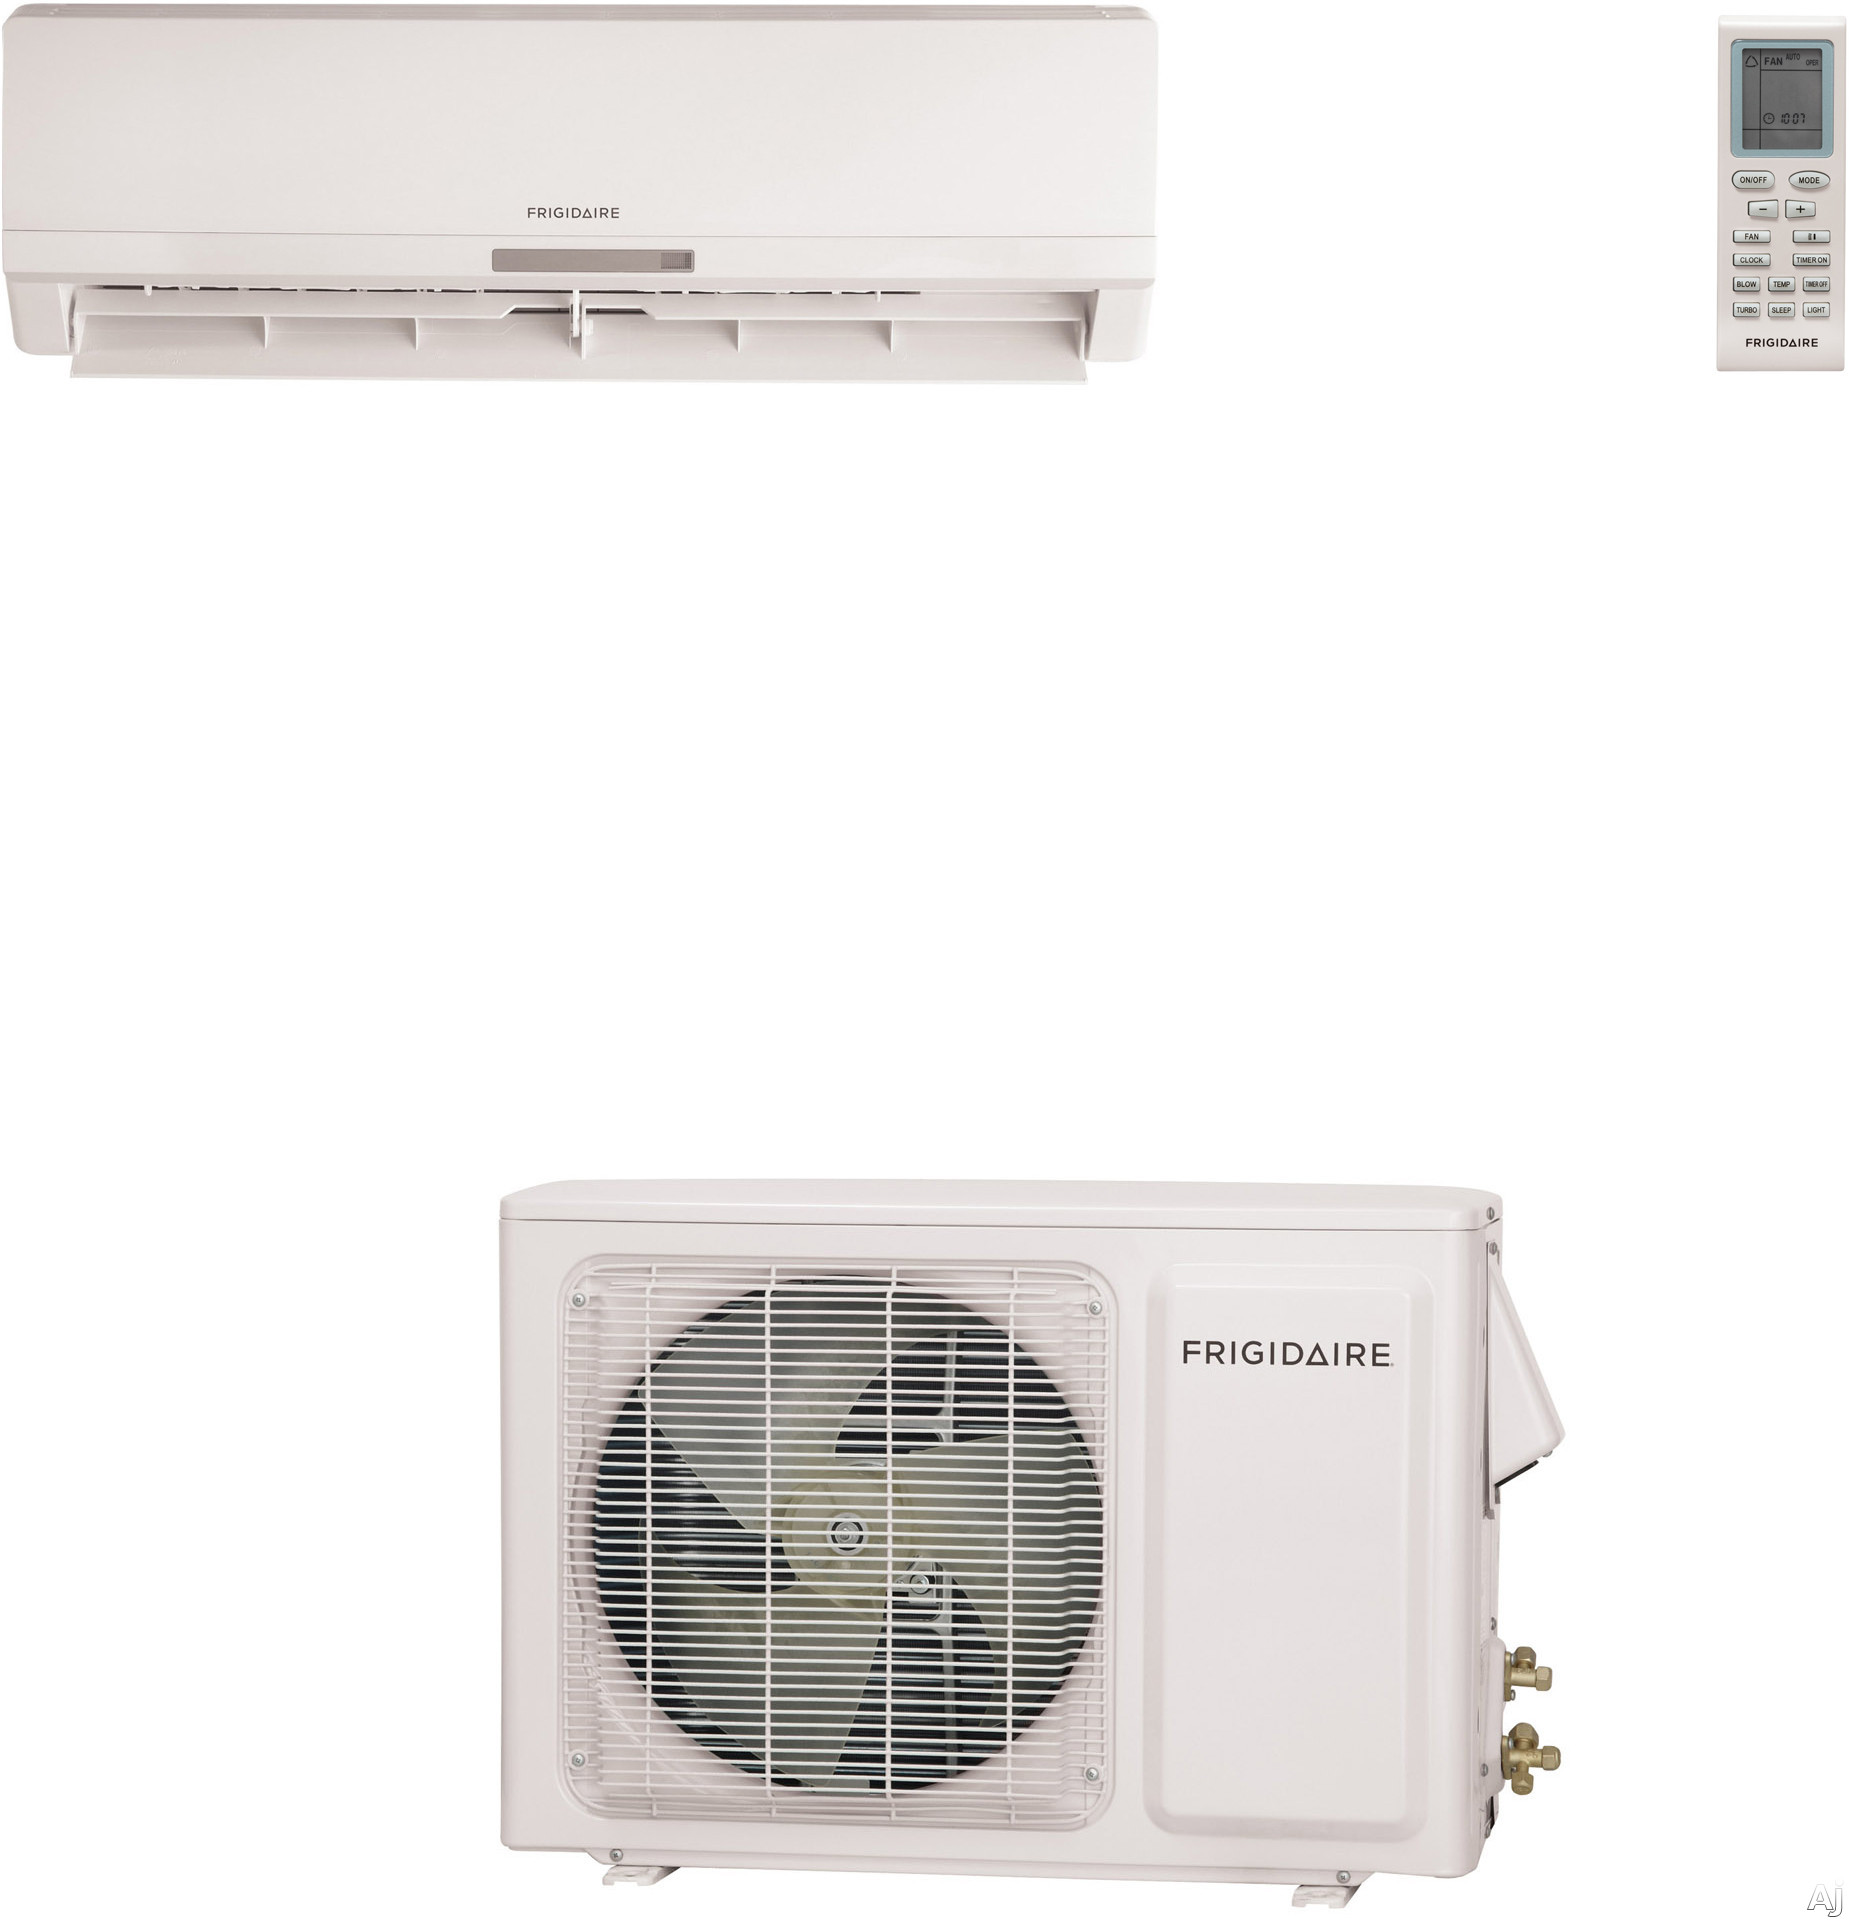 Frigidaire frs184ys2 18 000 btu single zone wall mount Ductless ac